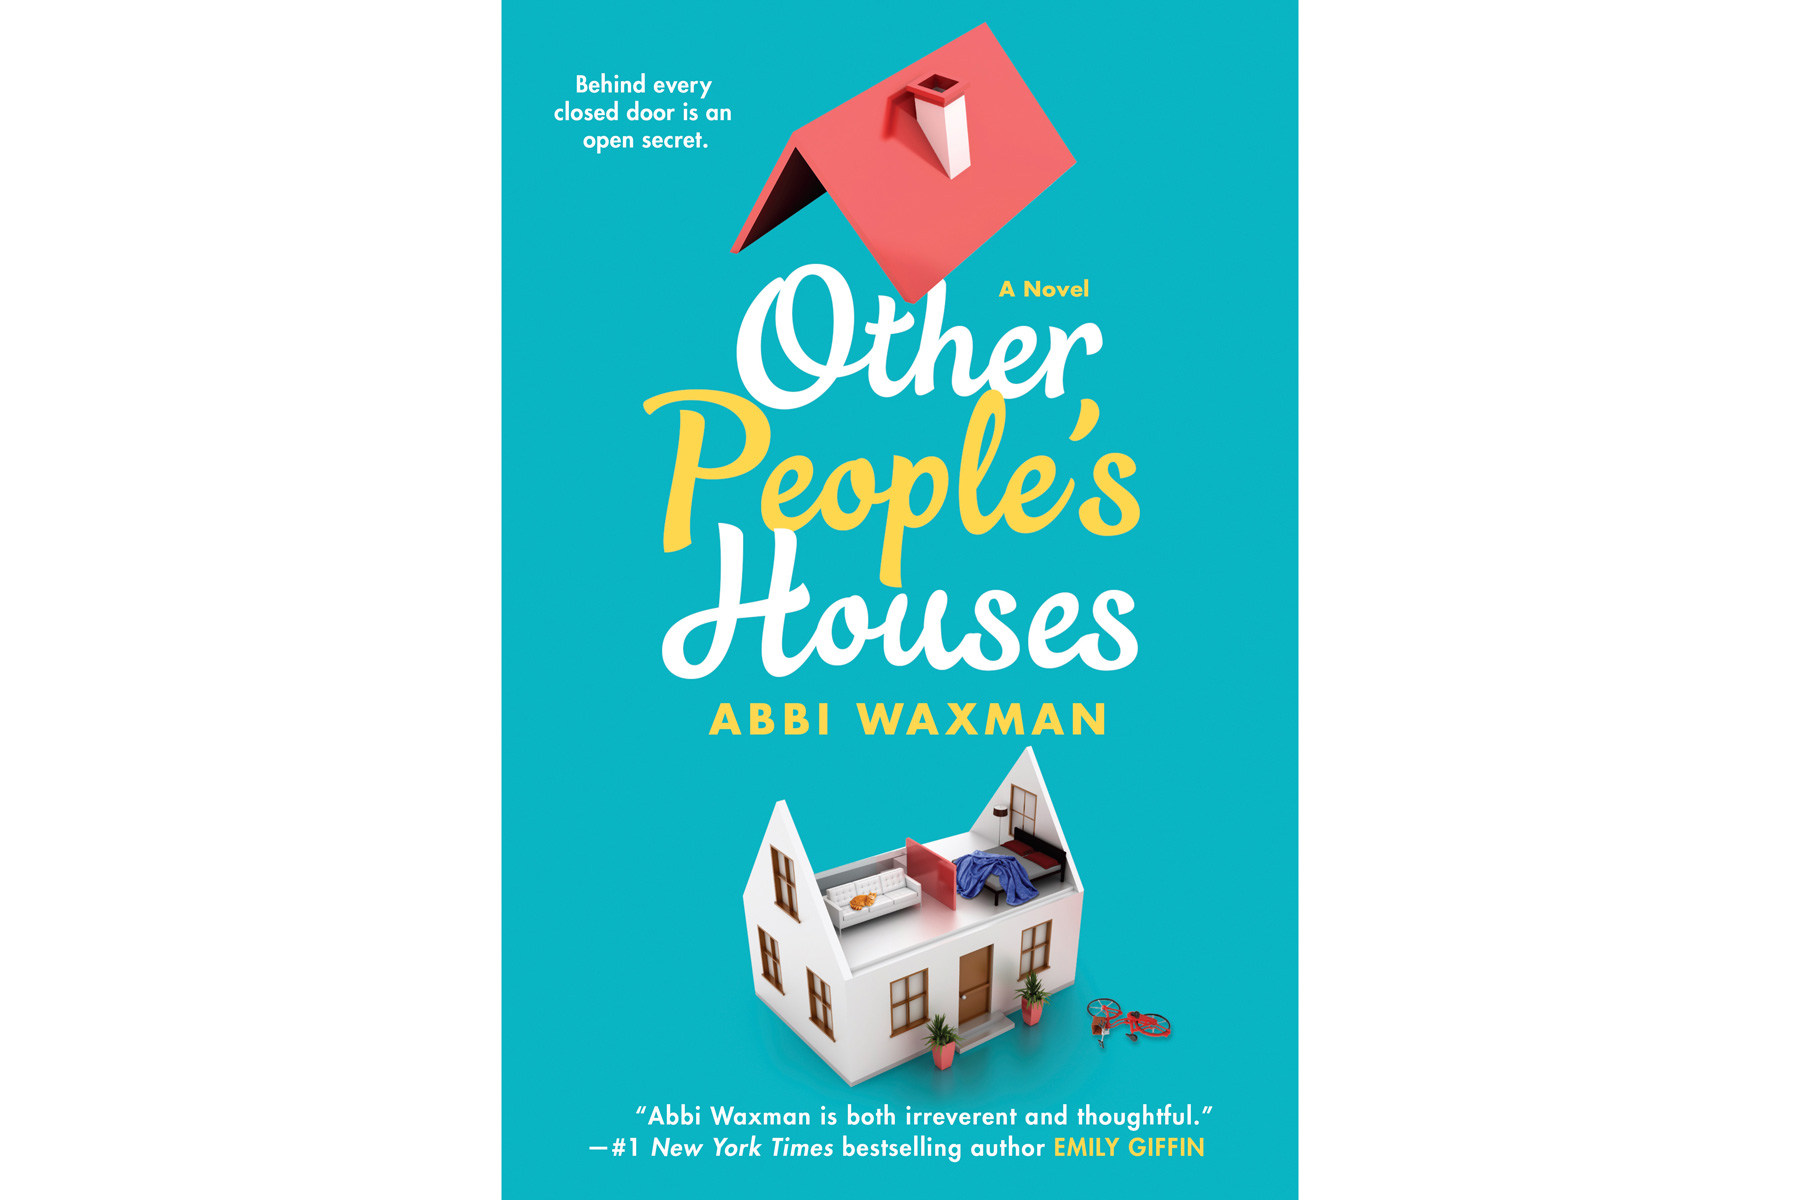 Other People's Houses, by Abbi Waxman